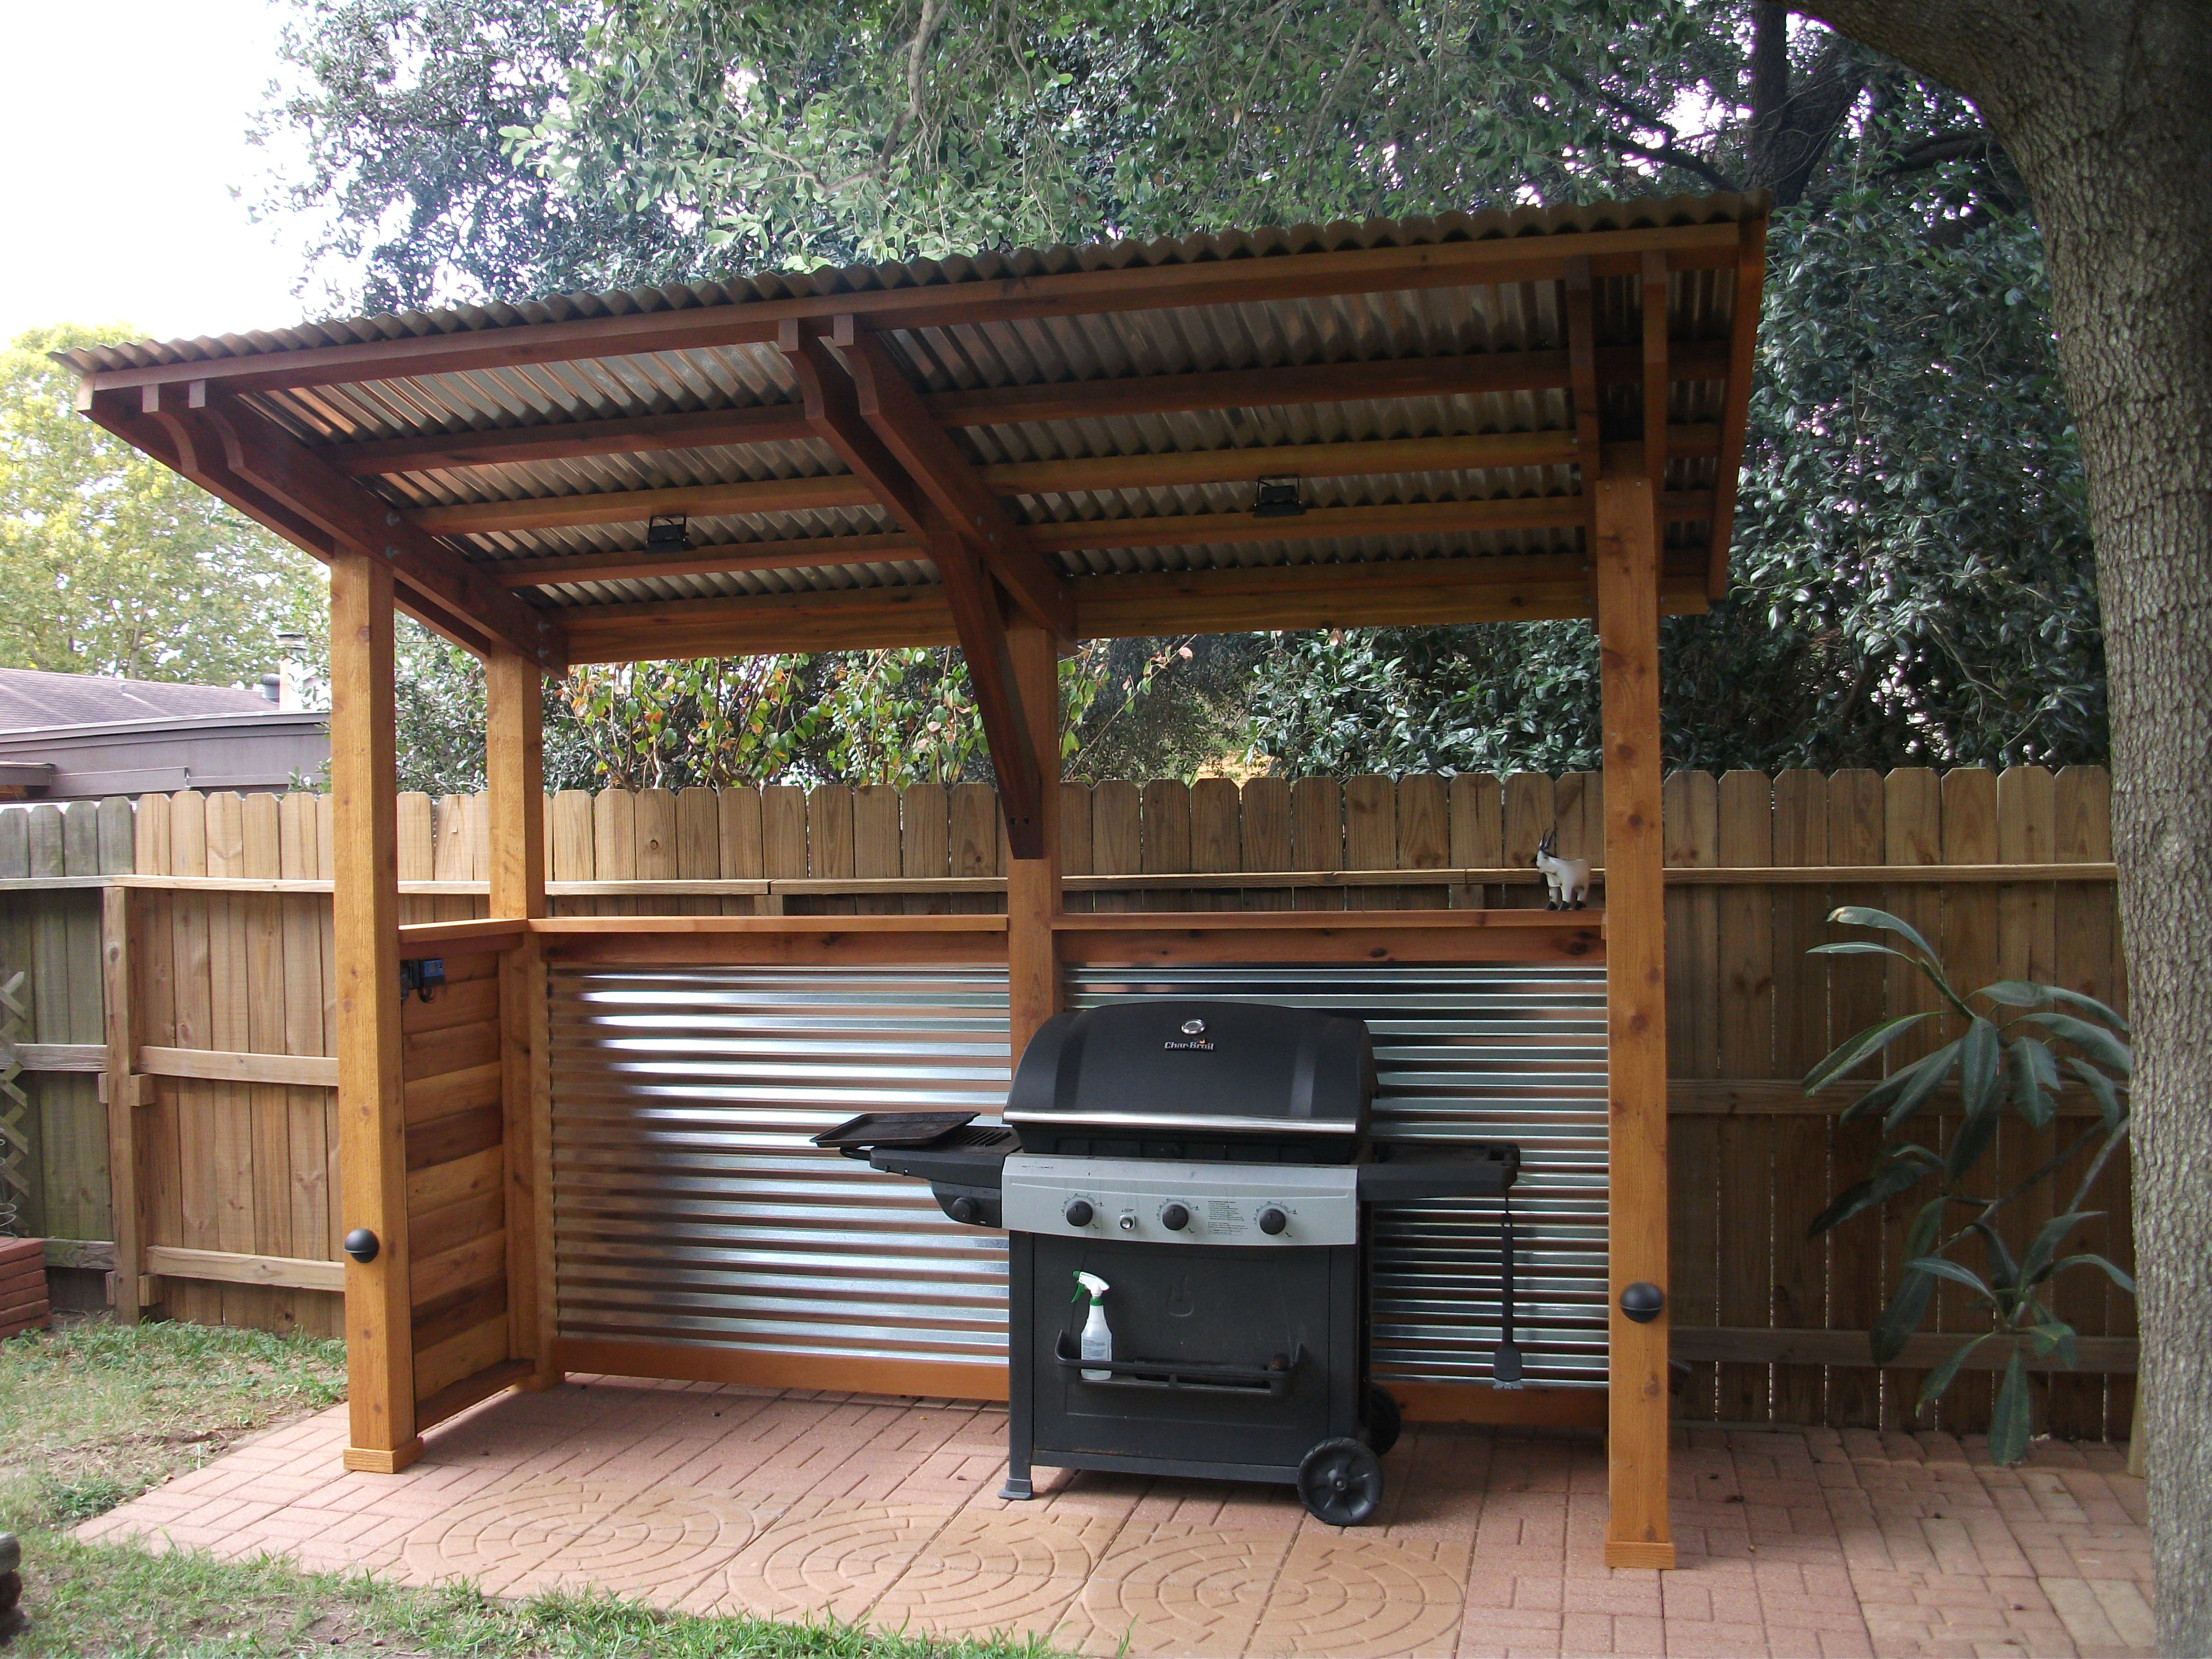 Bbq Cover Outdoor Grill Area Backyard Kitchen Outdoor Grill